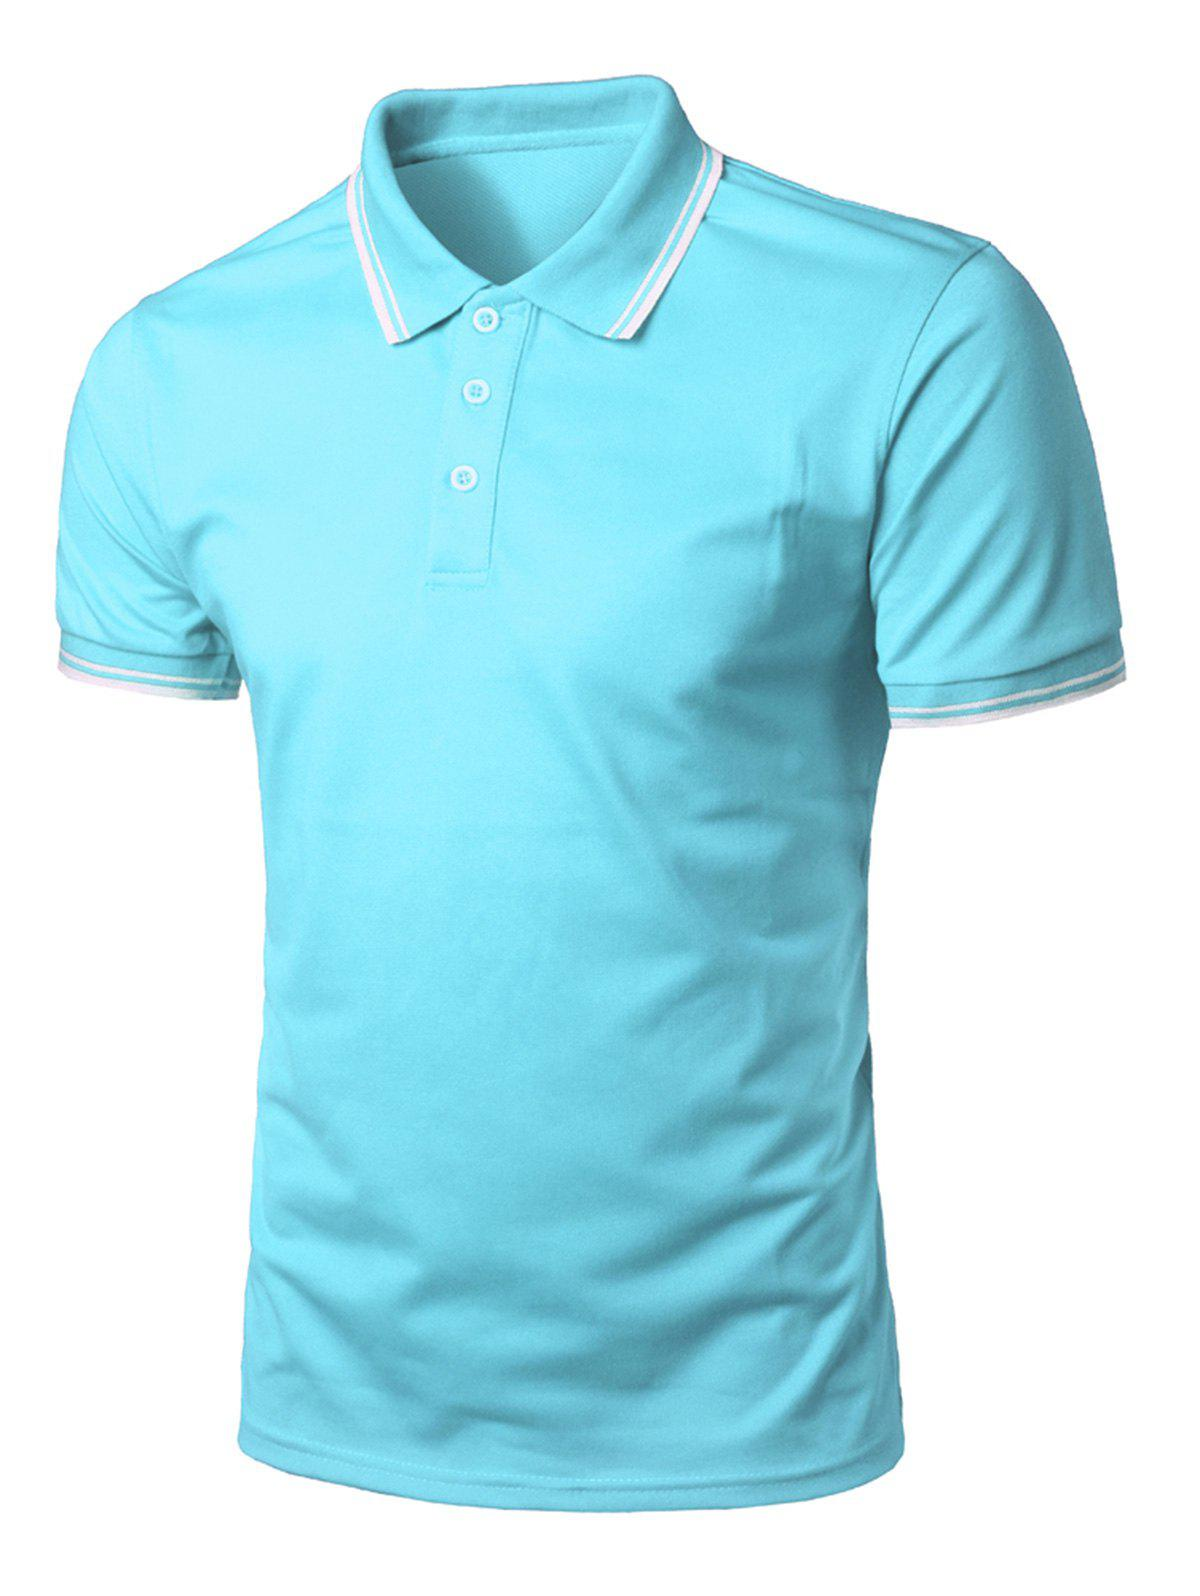 Short Sleeve Half Button Polo Shirt - TURQUOISE L